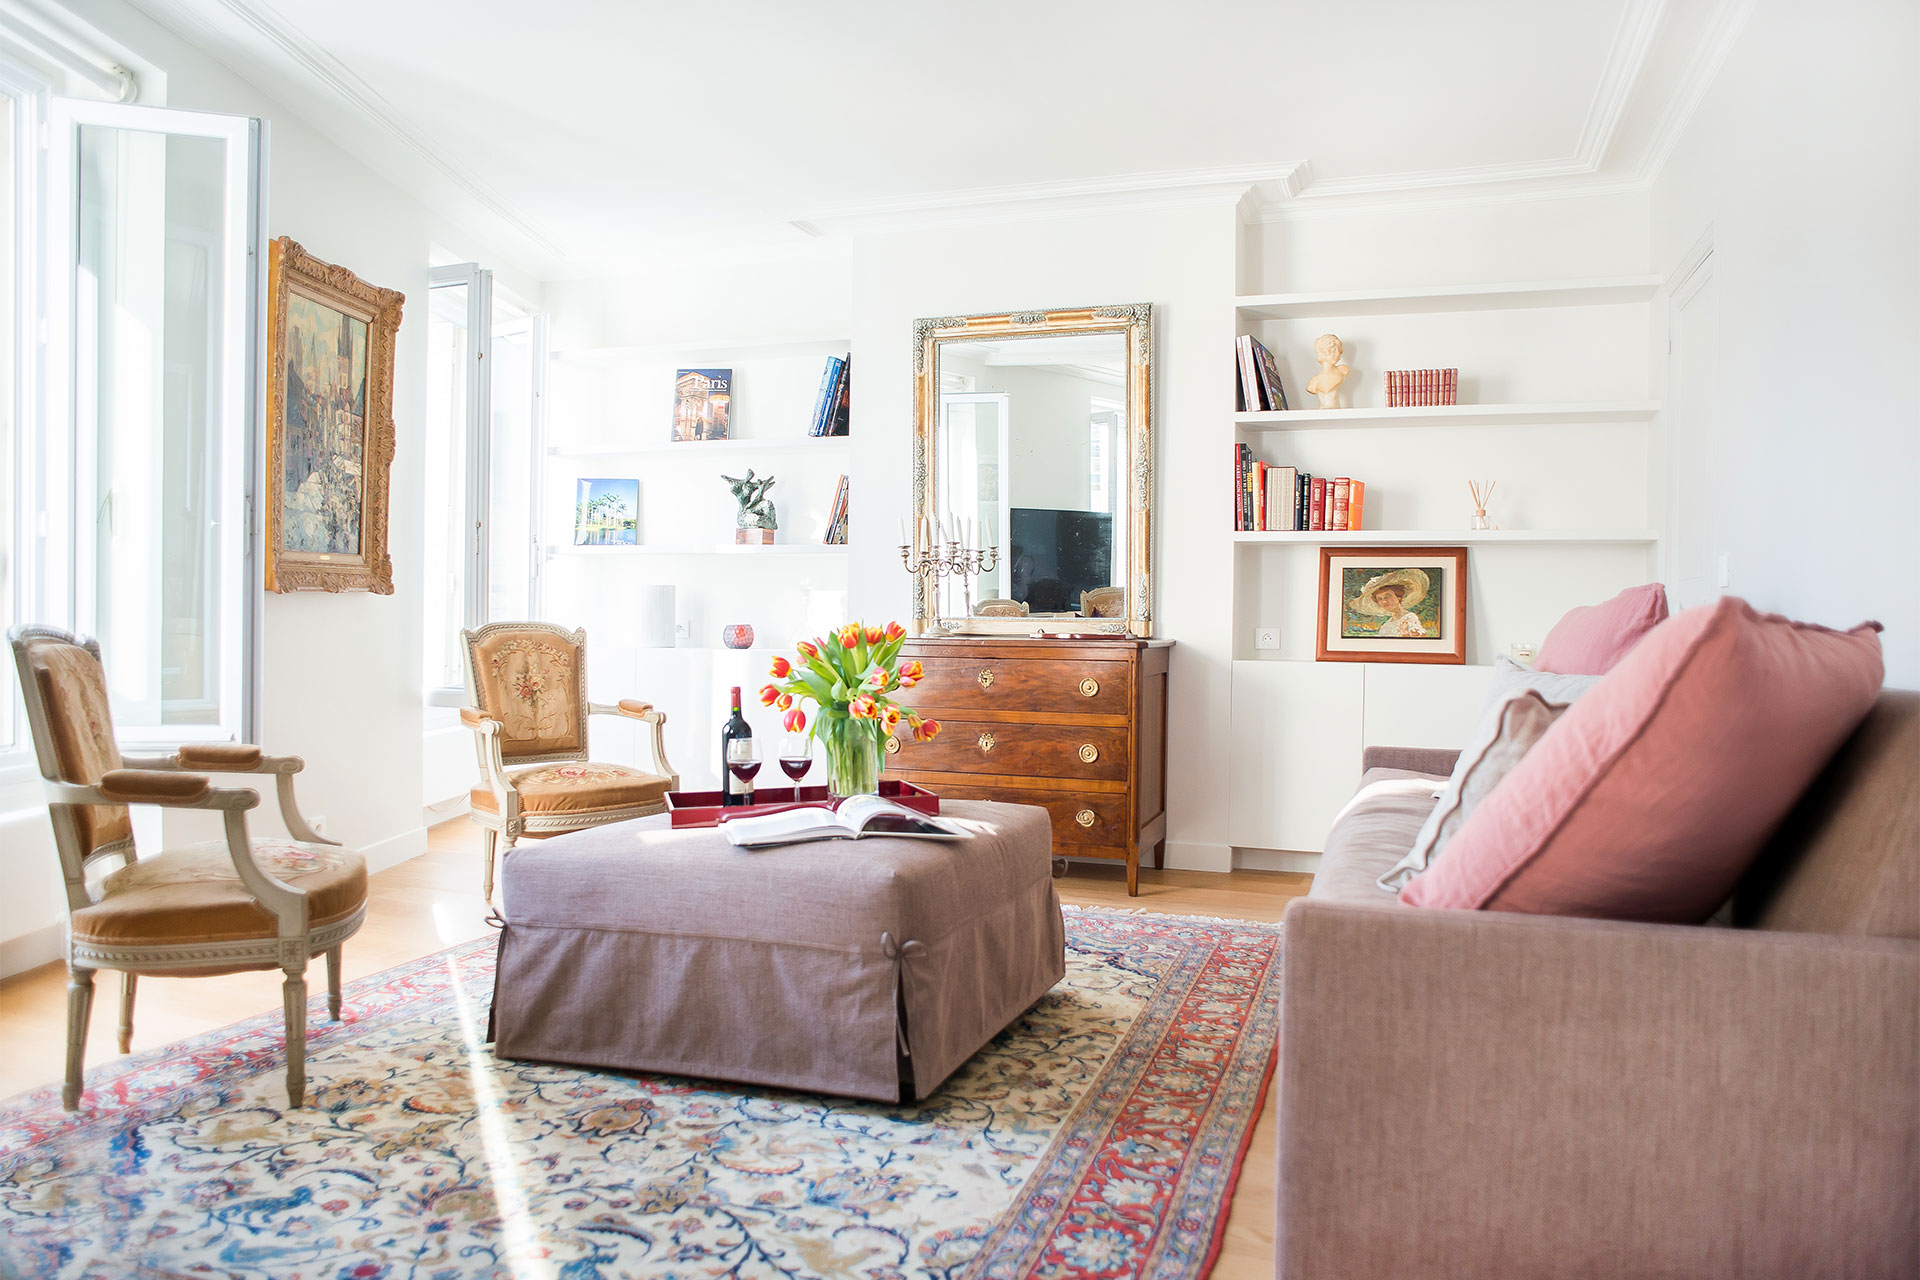 1 bed, 2 bath Paris vacation rental in the 7th arrondissement